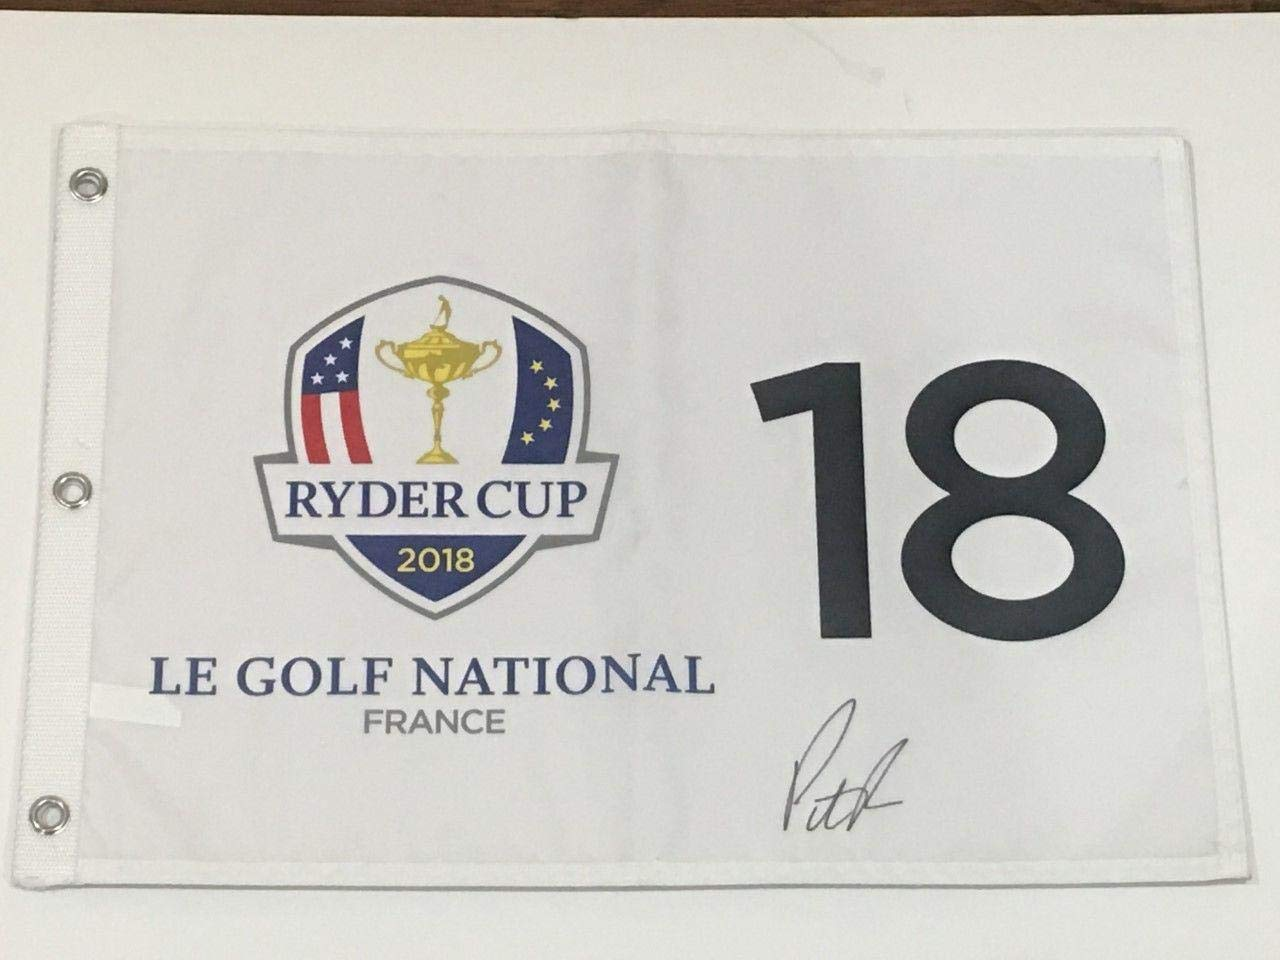 Patrick Reed Signed 2018 Ryder Cup Flag Le Golf National France Team Usa Proof Autographed Pin Flags